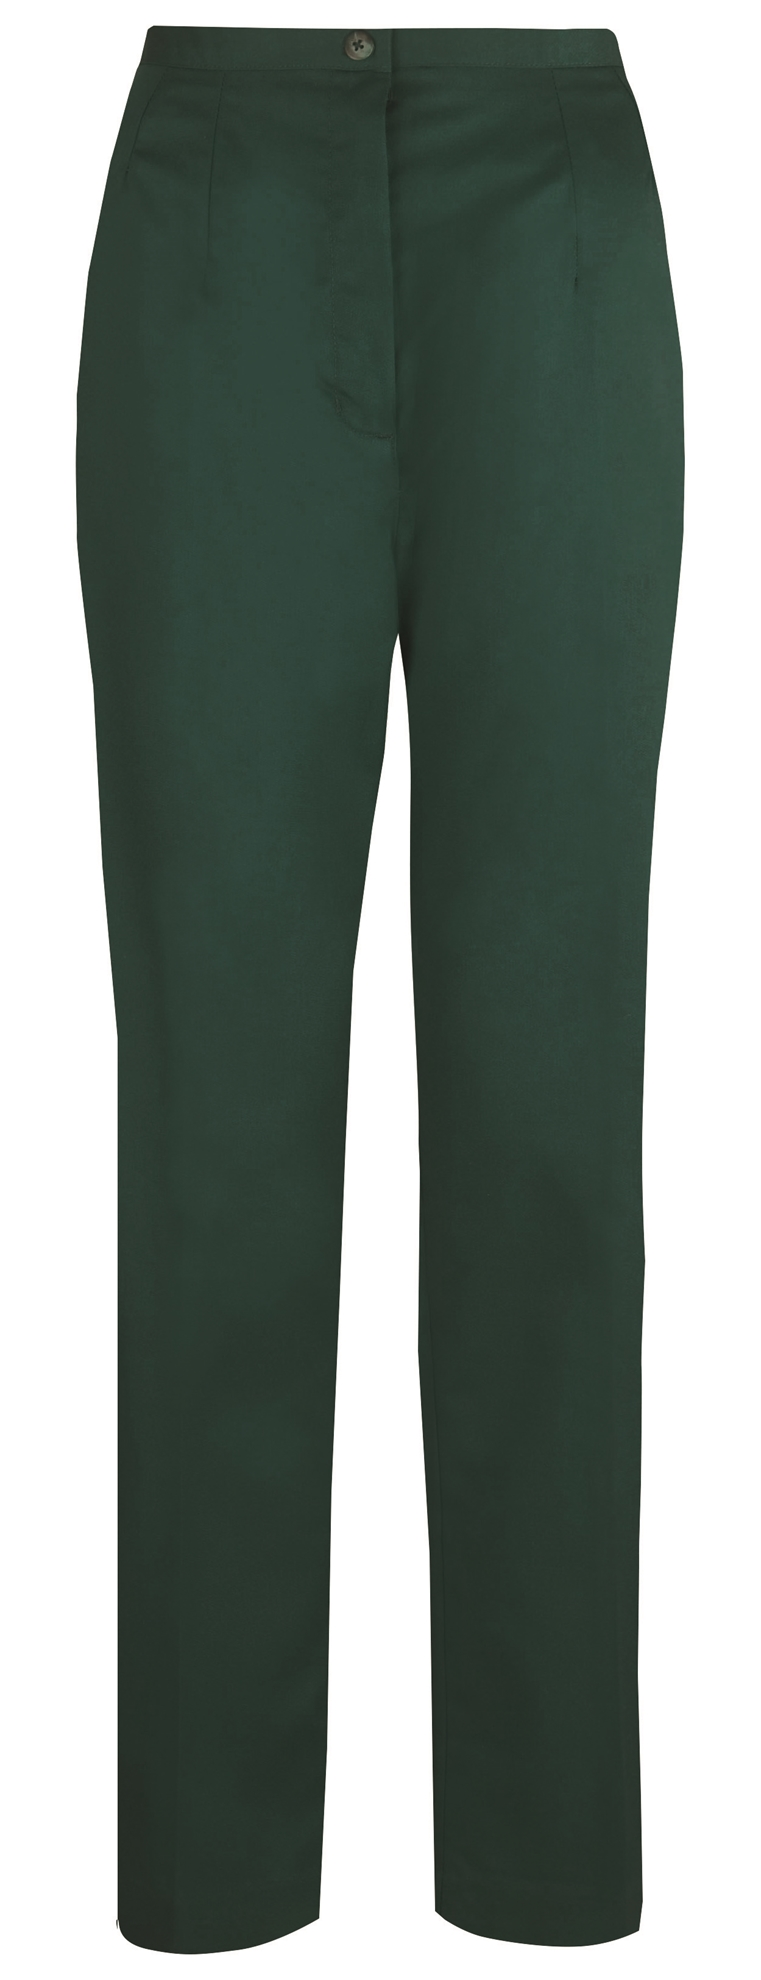 Picture of Flexi-Stretch Straight Leg Trousers - Bottle Green